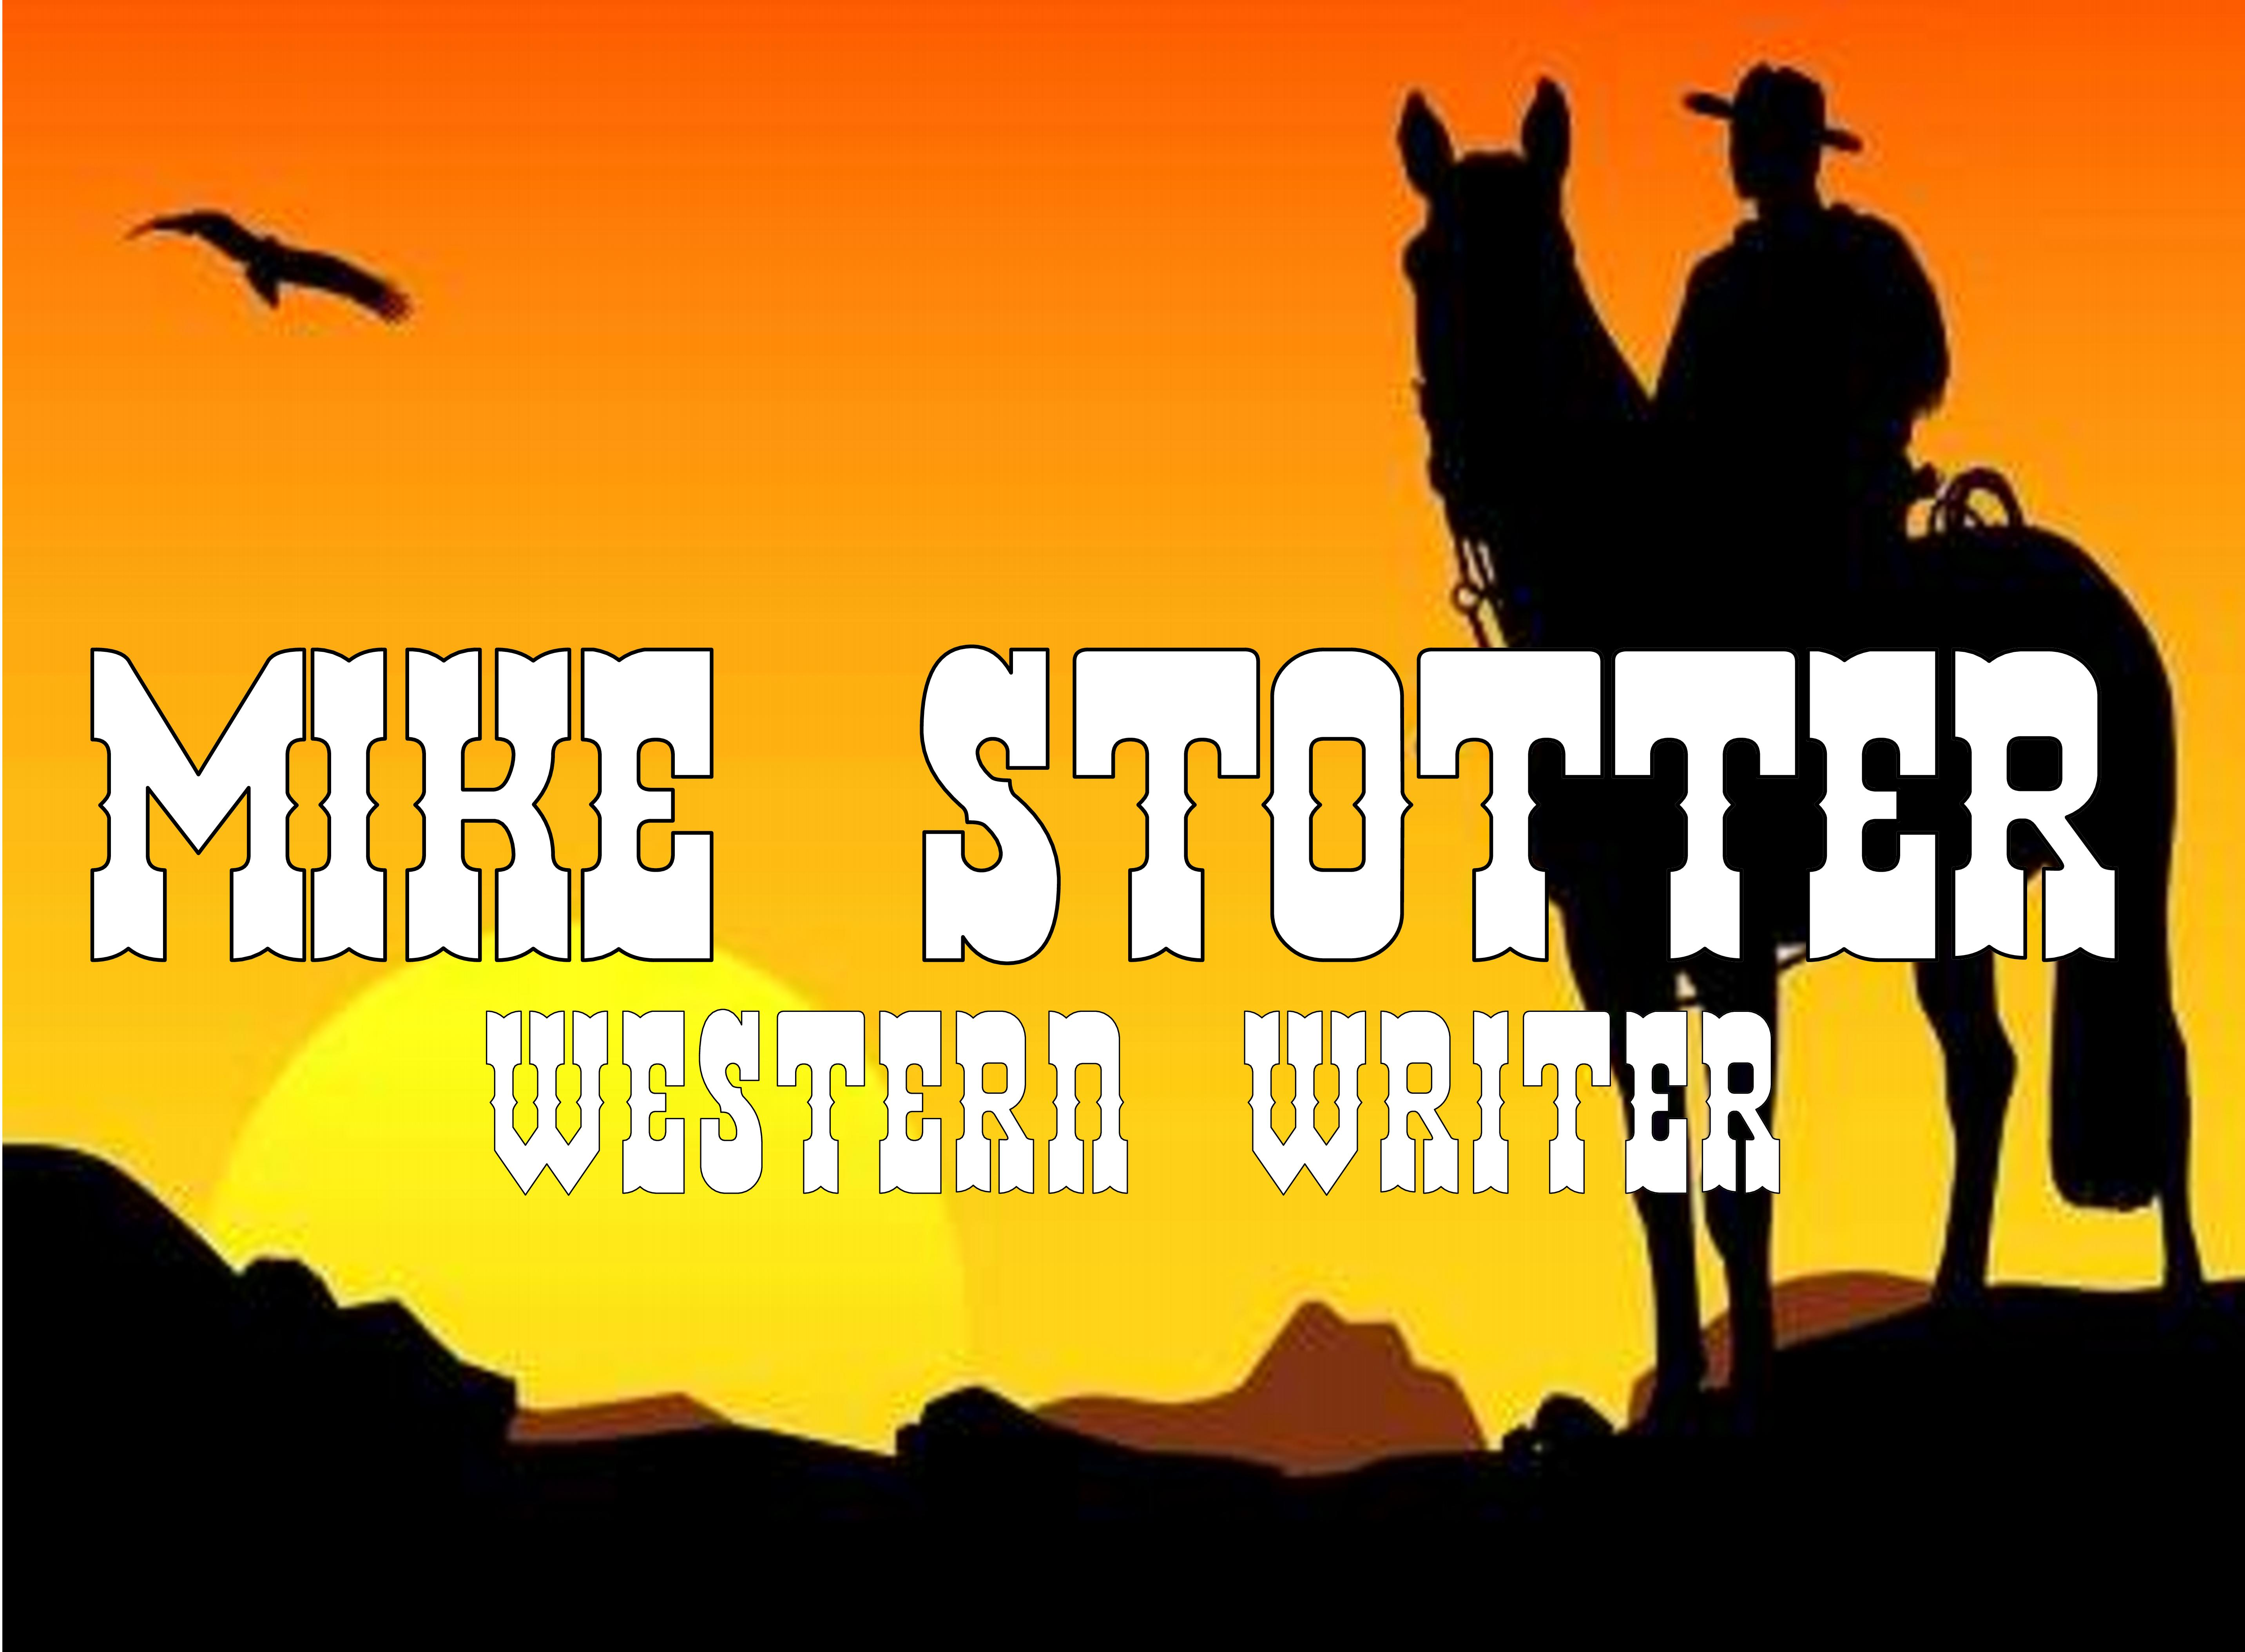 Mike Stotter - Author